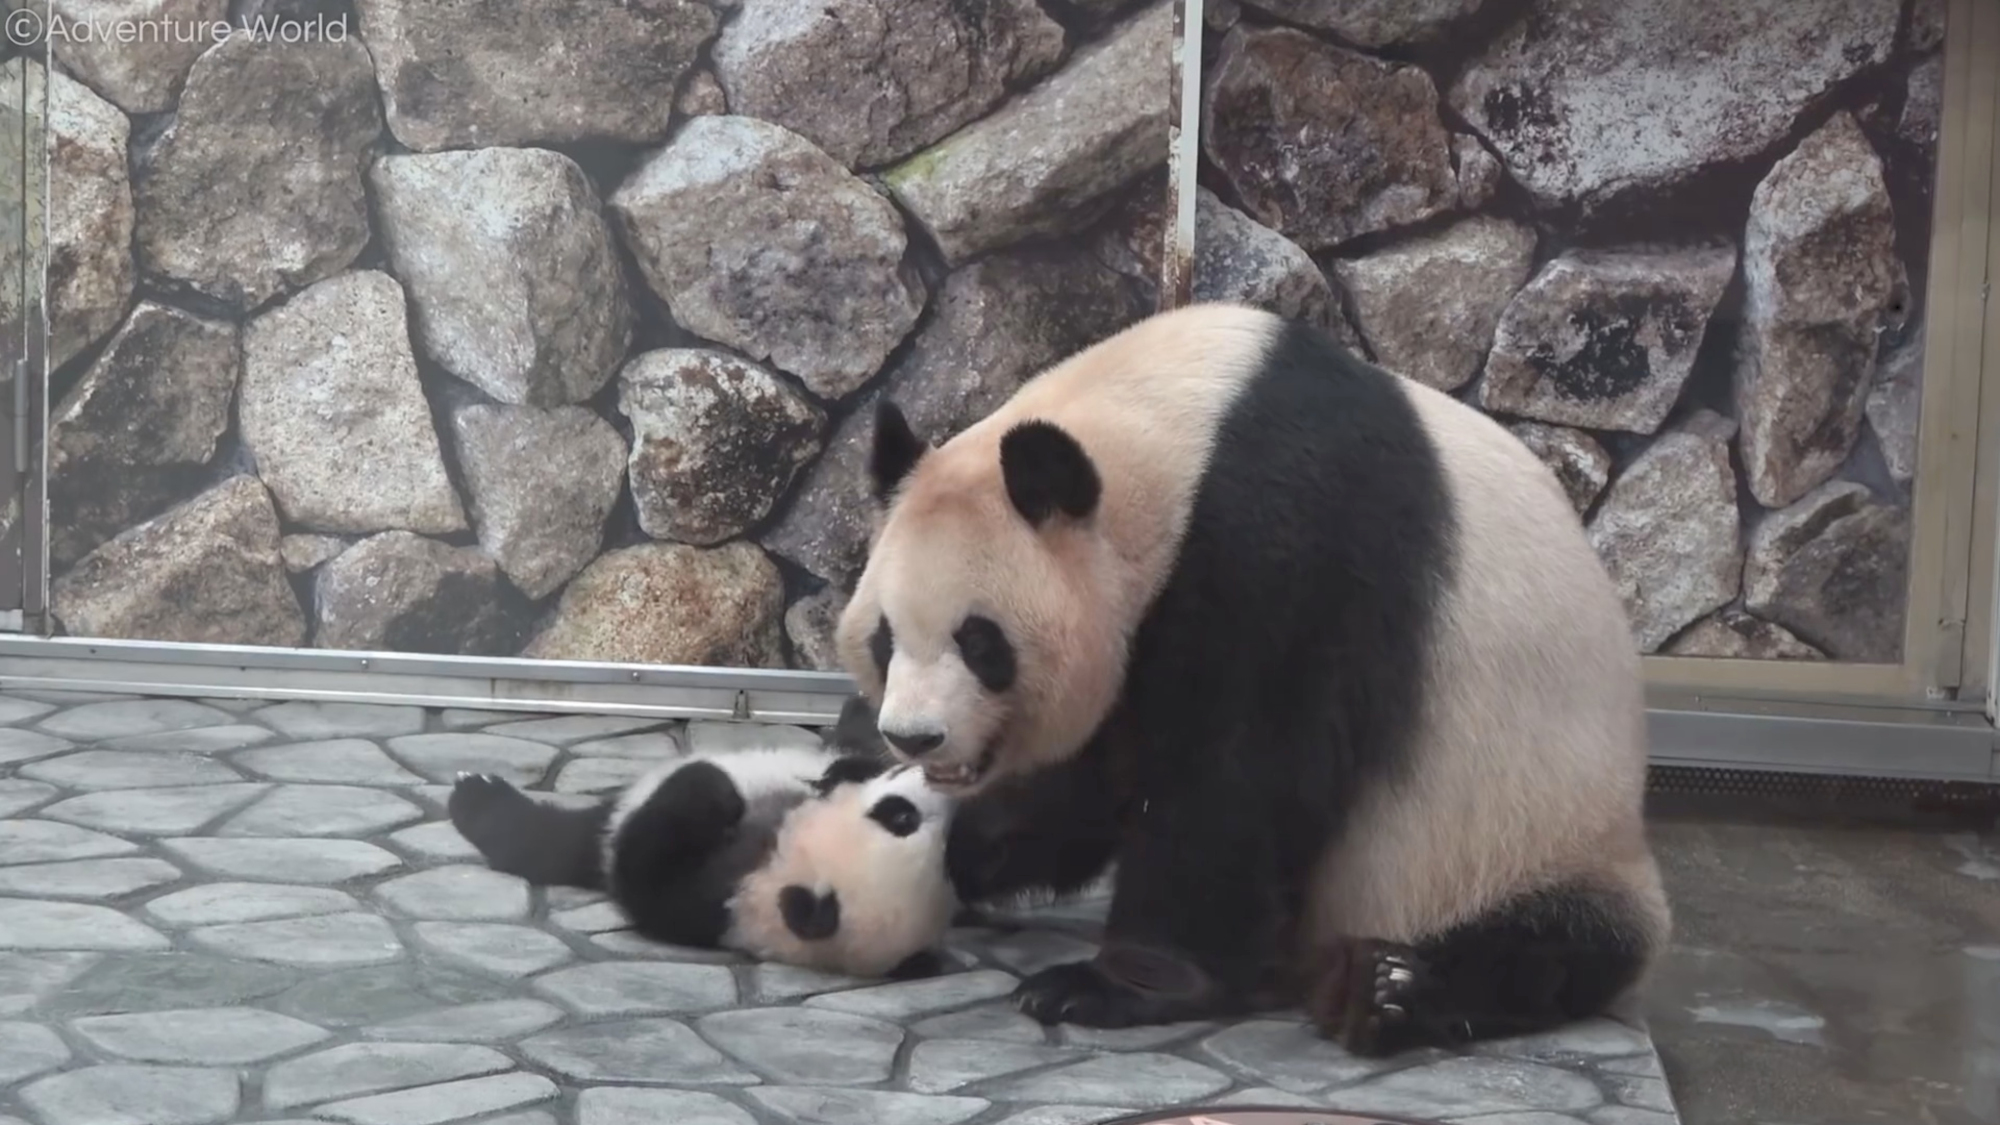 VIDEO: Panda Cub Clambers All Over Her Mom During Playtime